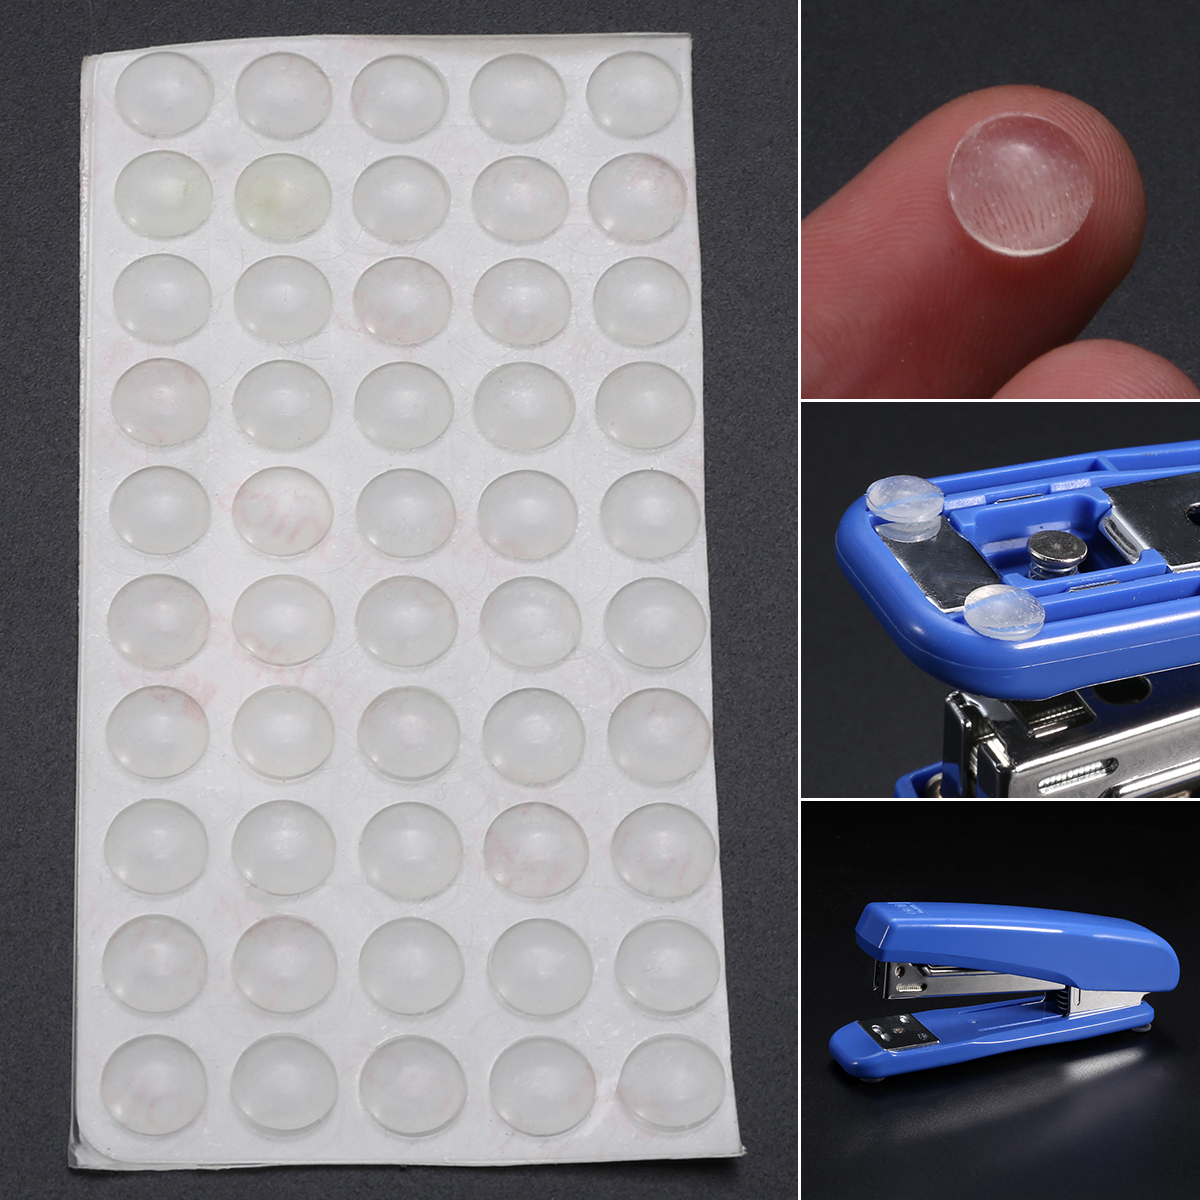 50Pcs  Self Adhesive Door Buffer Pad Rubber Silicone Feet Cabinet Drawers Clear Semicircle Bumpers Furniture Door Accessories50Pcs  Self Adhesive Door Buffer Pad Rubber Silicone Feet Cabinet Drawers Clear Semicircle Bumpers Furniture Door Accessories